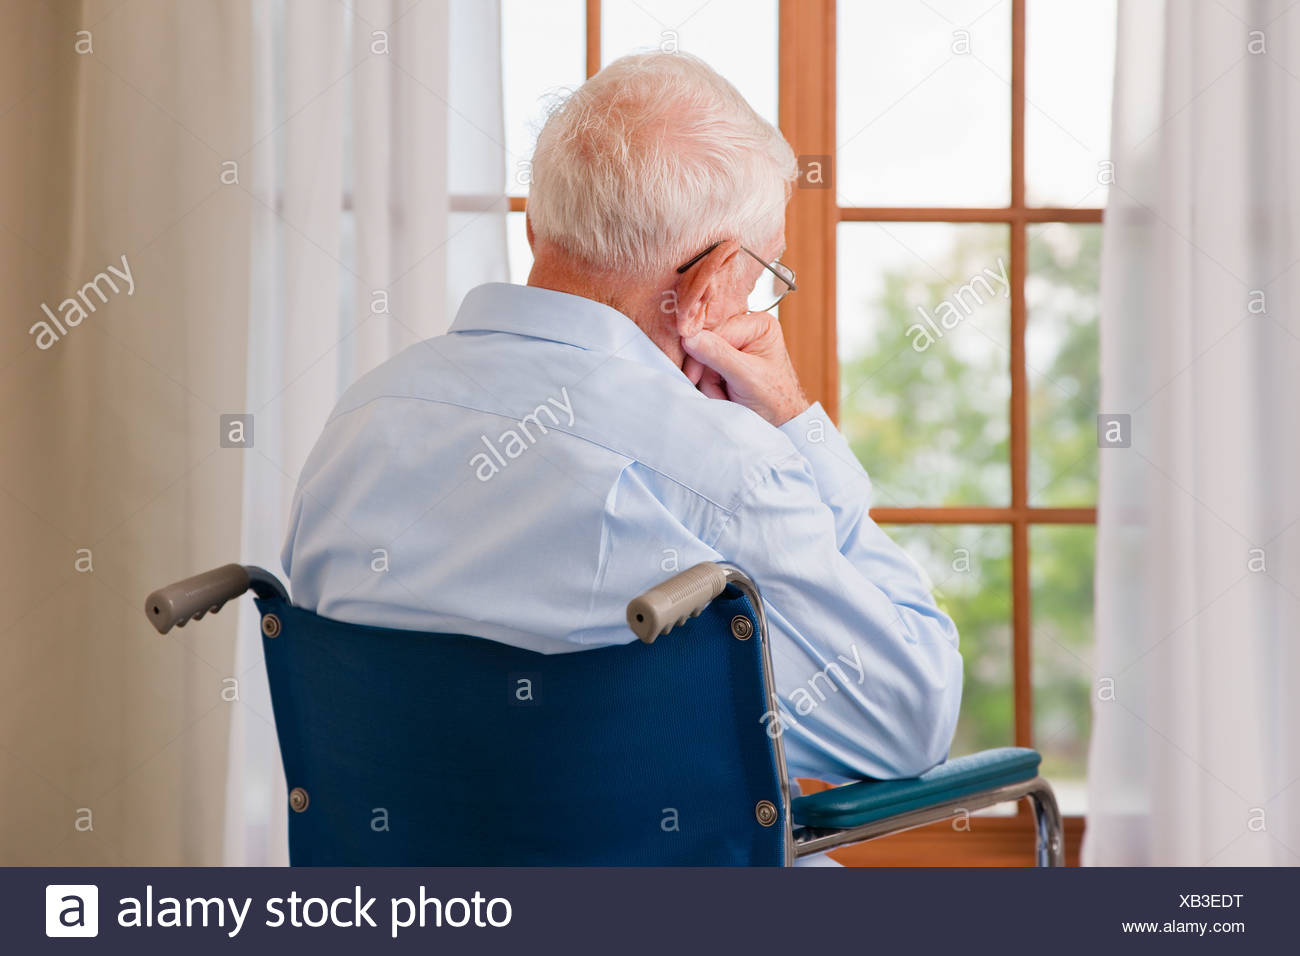 USA, Illinois, Metamora, Rear view of senior man on wheelchair resting in front of window - Stock Image